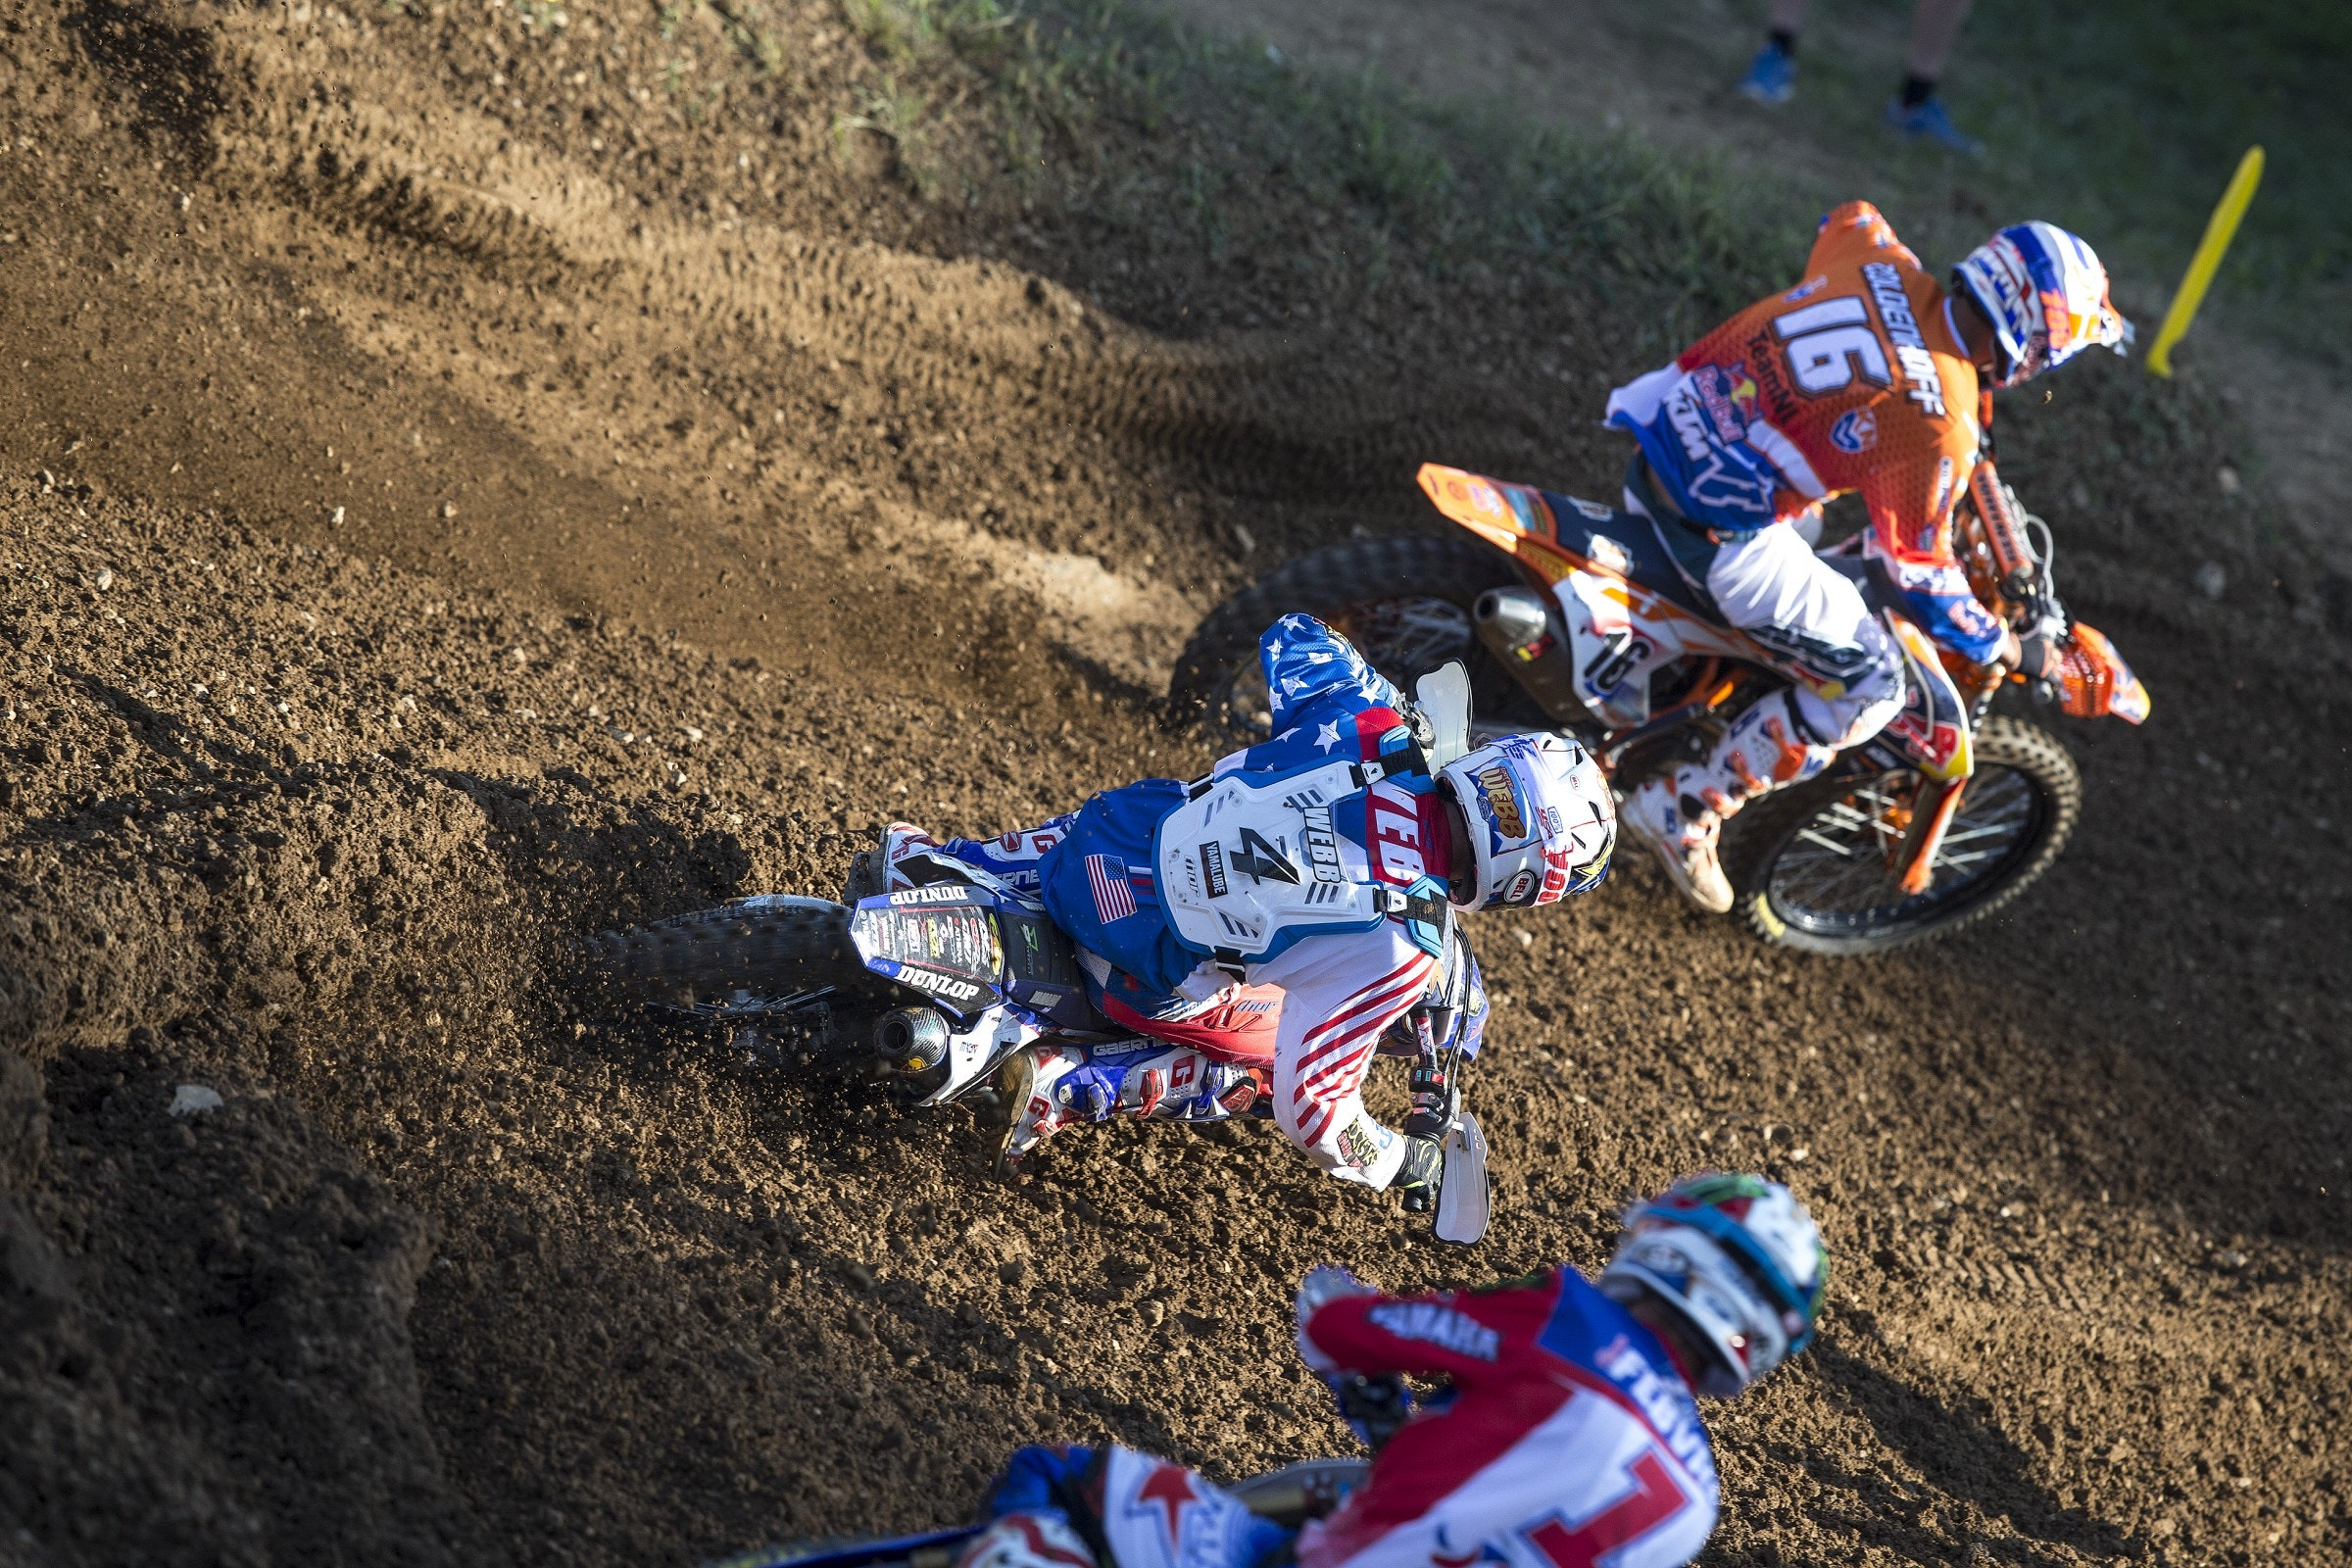 The calculators needed to be broken out once this trio of Coldenhoff (16), Webb (4), and Febvre (1) linked up on the track.